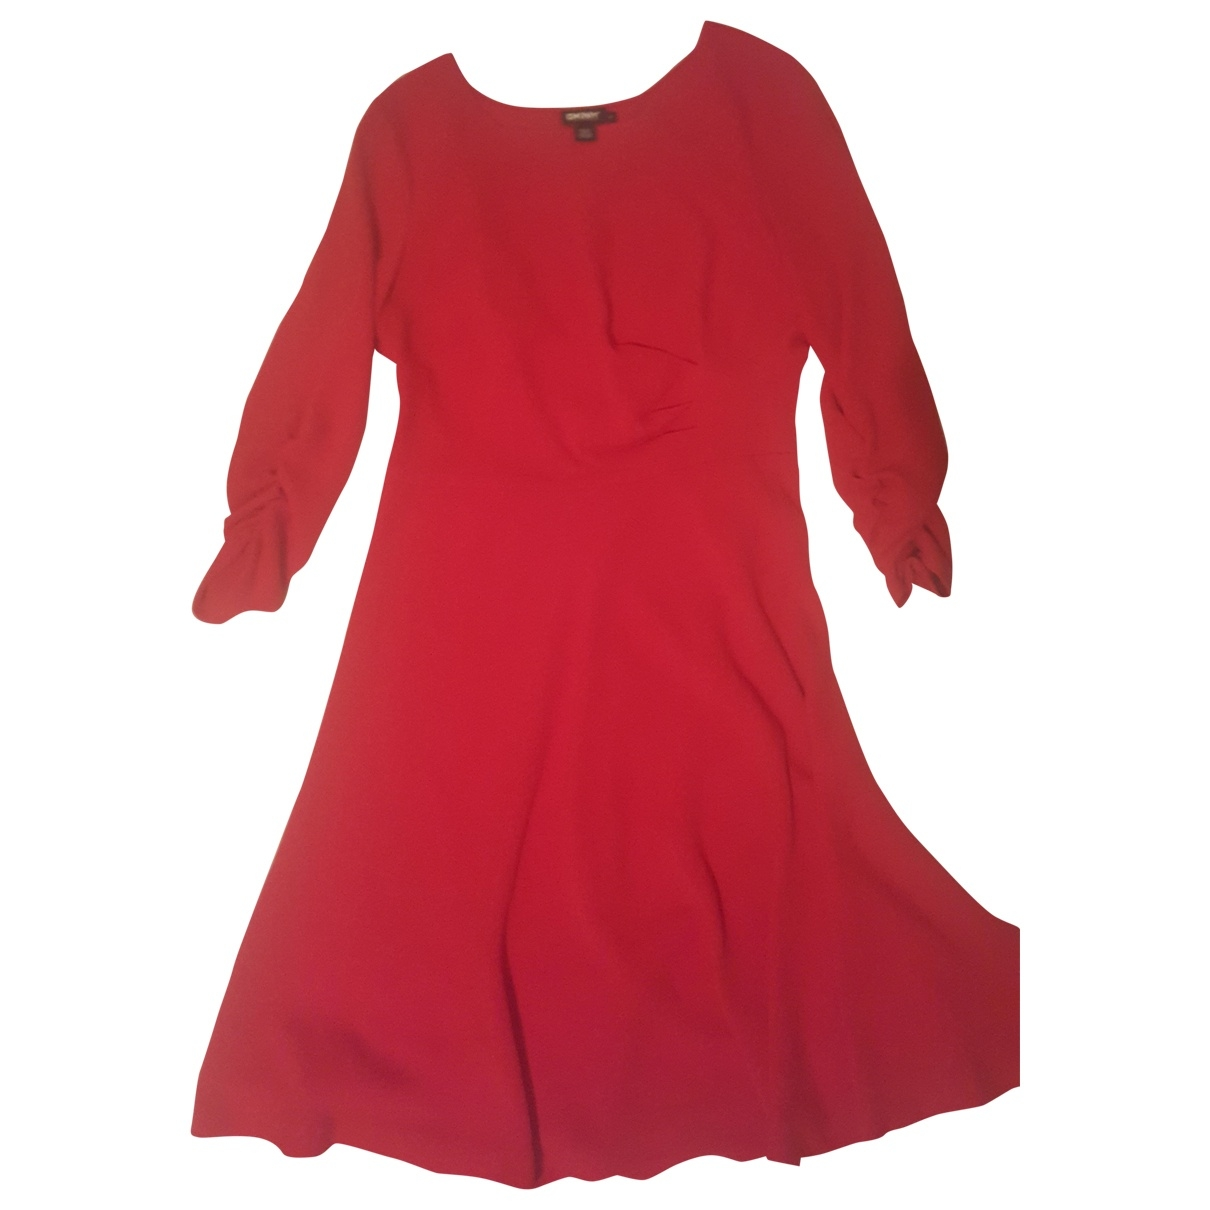 Dkny - Robe   pour femme - rouge